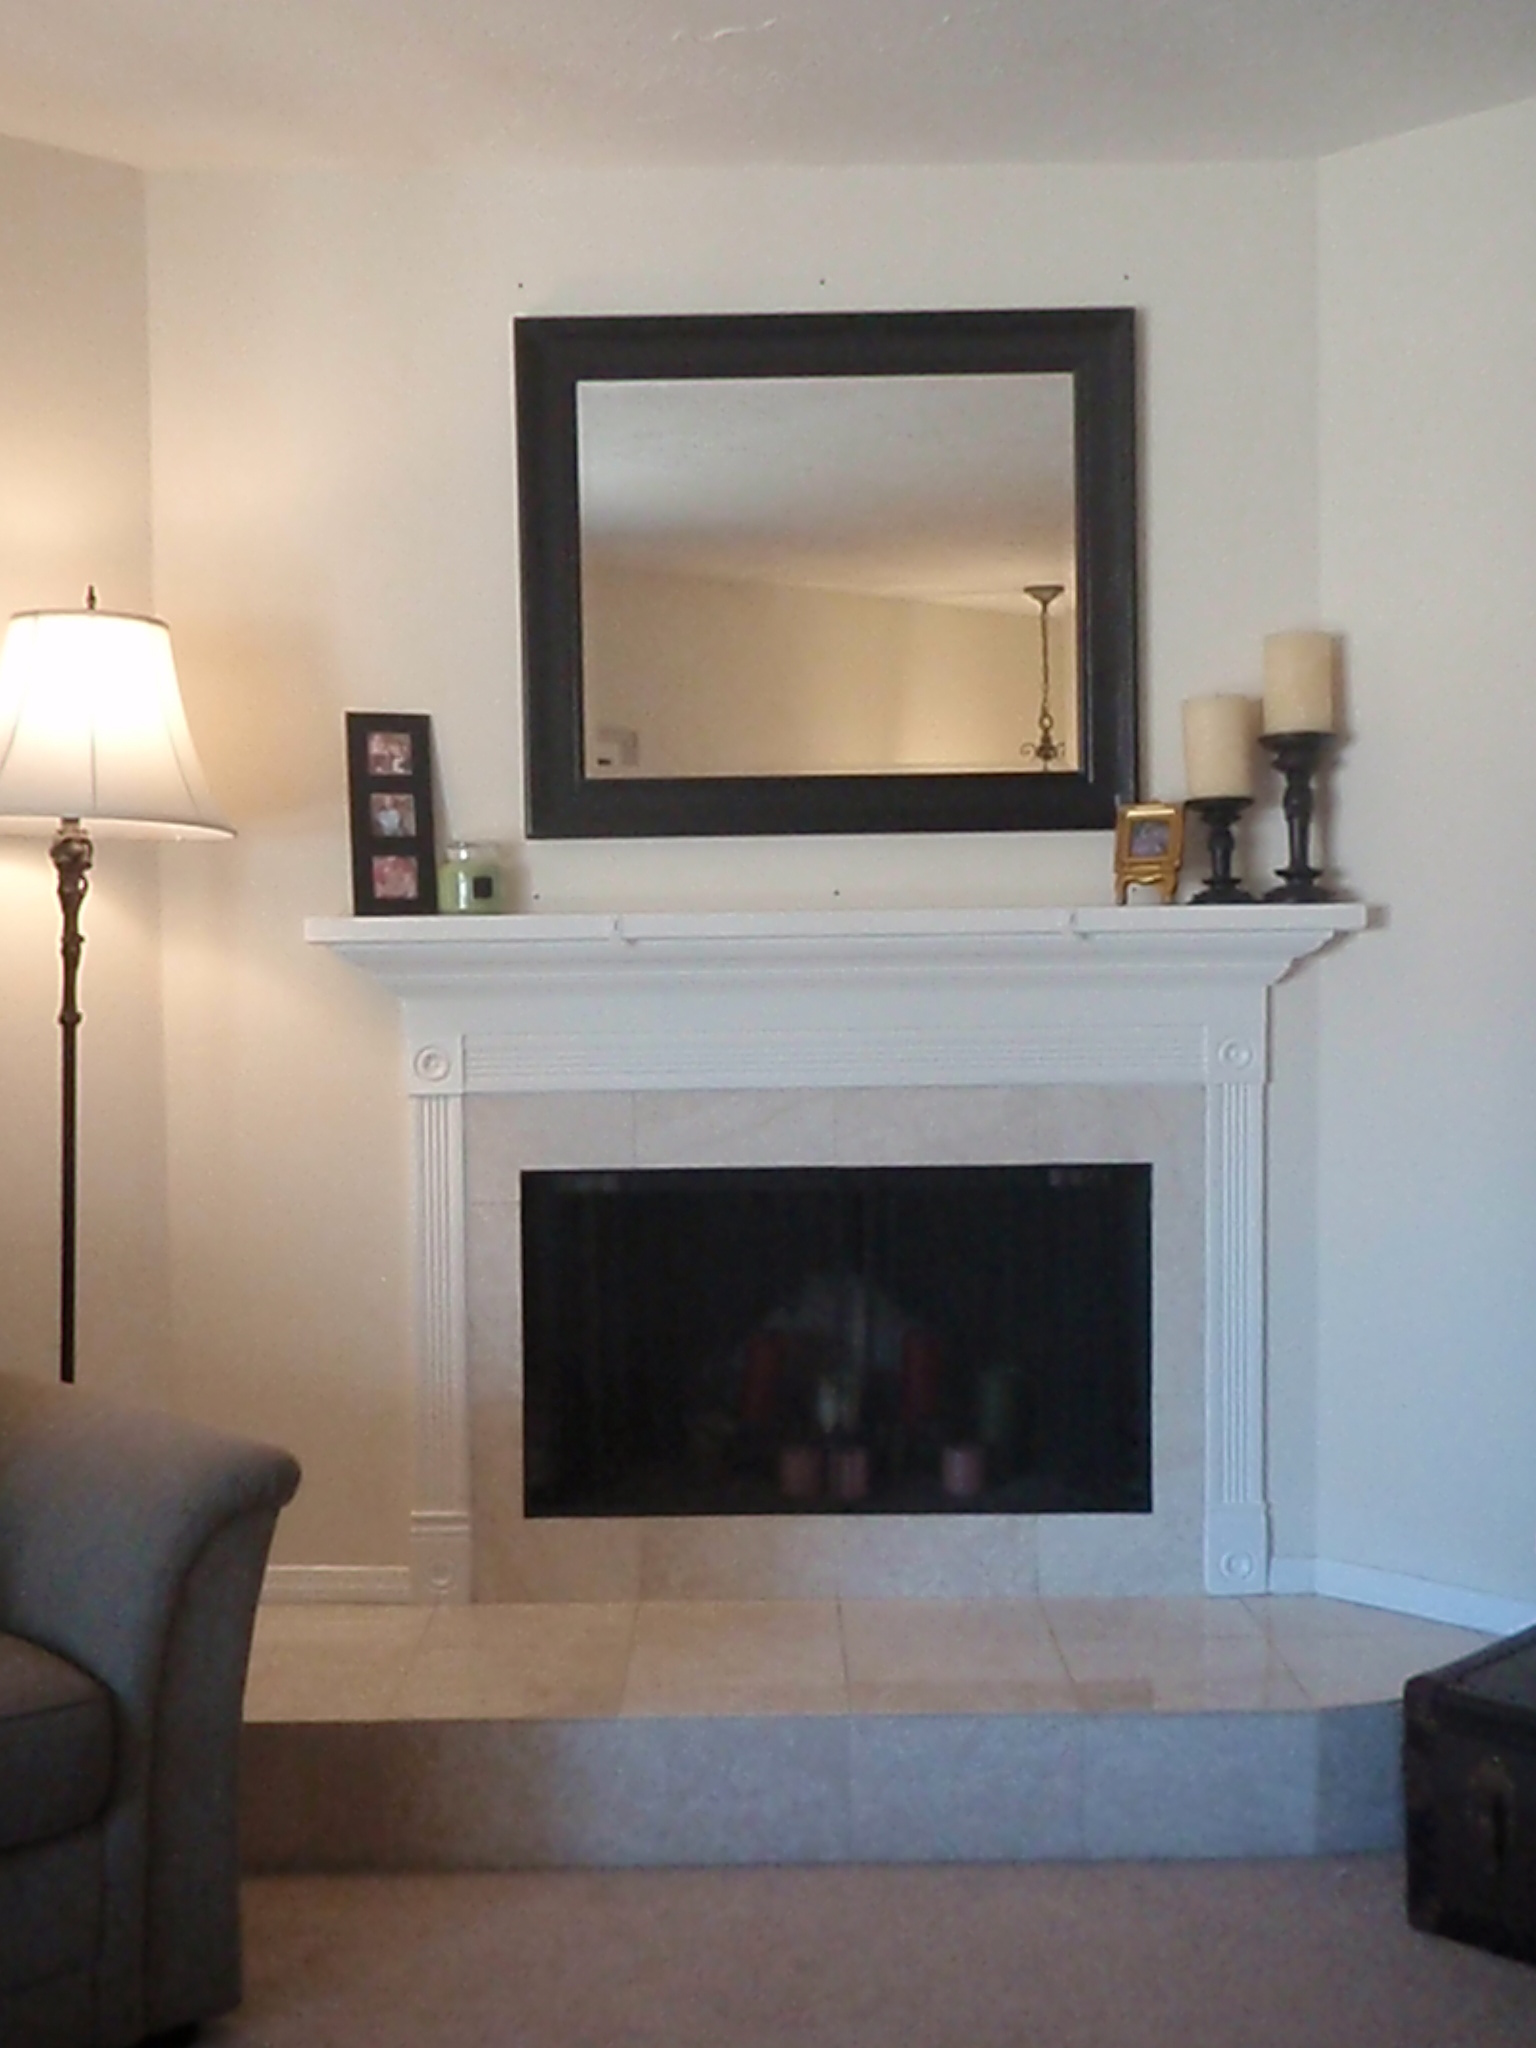 NataLee 9 1 1: Off Center Fireplace Part 66